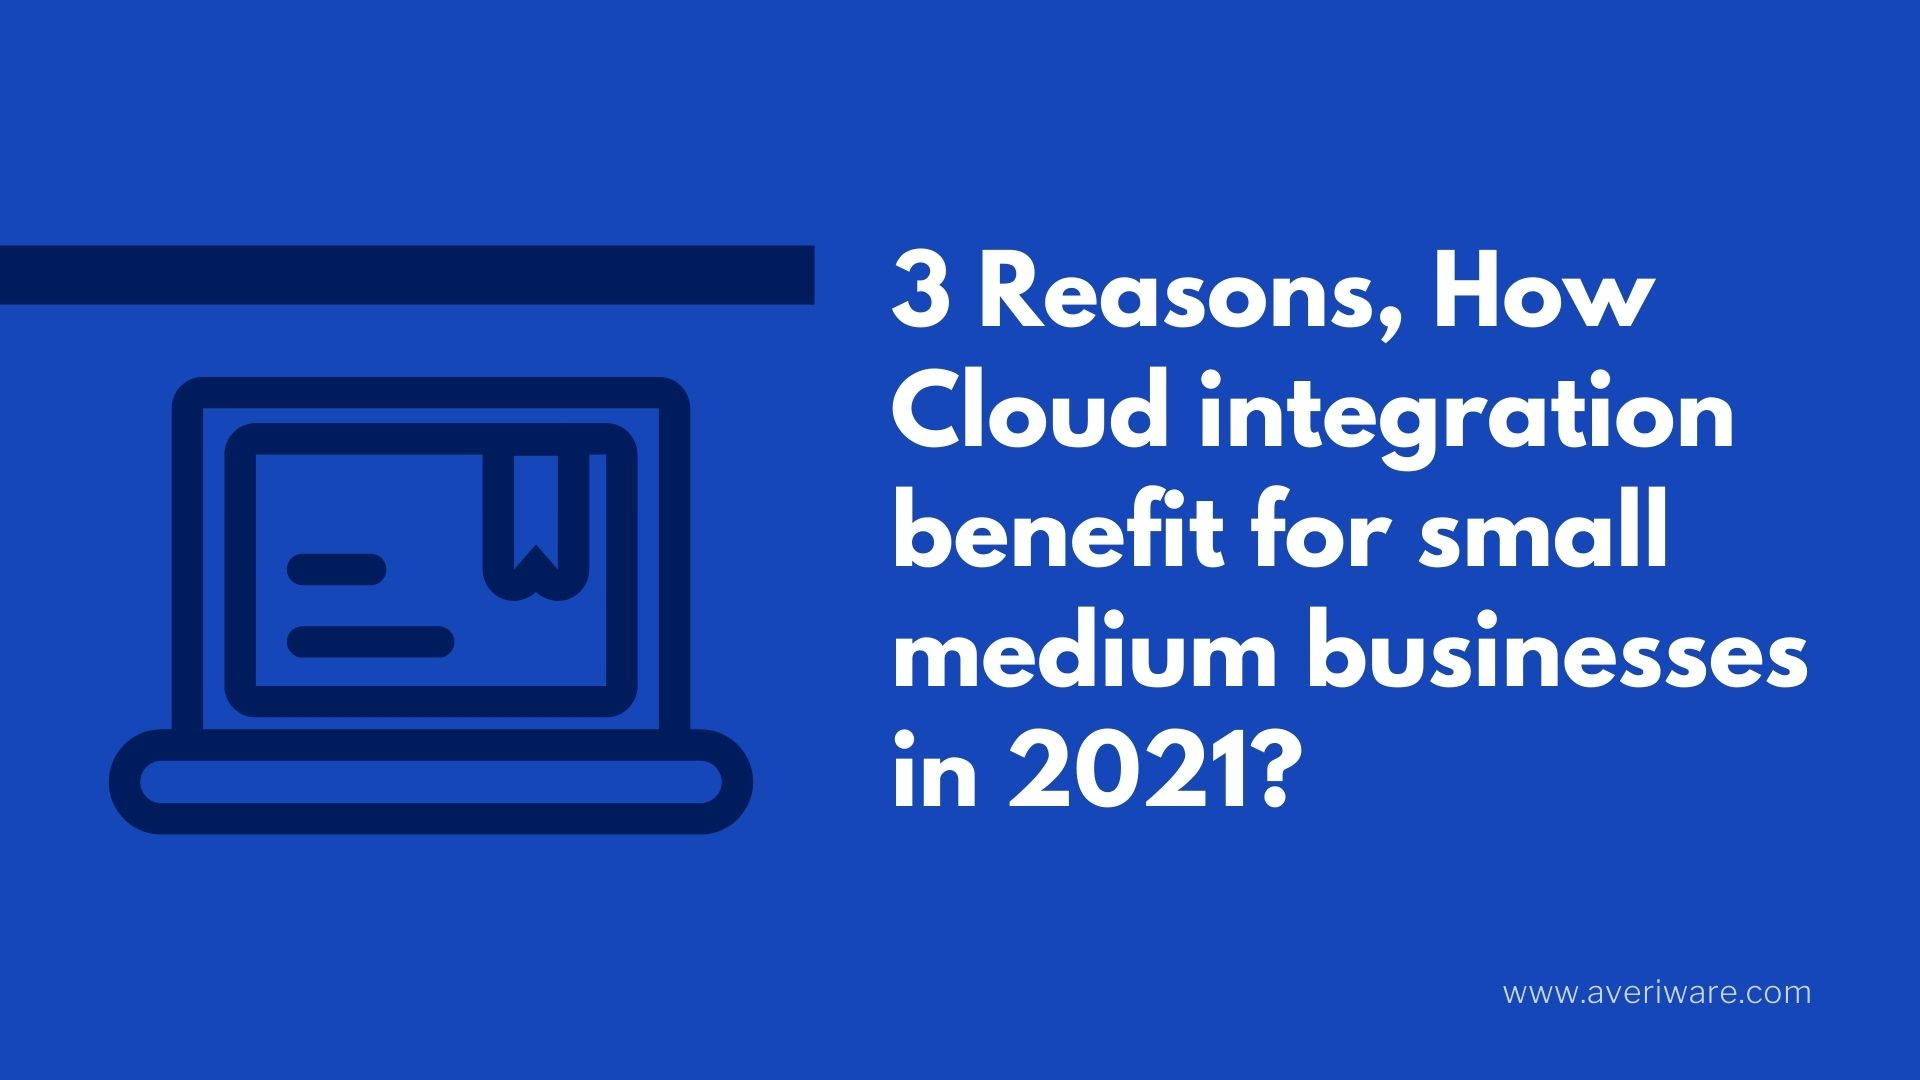 How-Cloud-integration-benefit-for-small-medium-businesses-in-2021